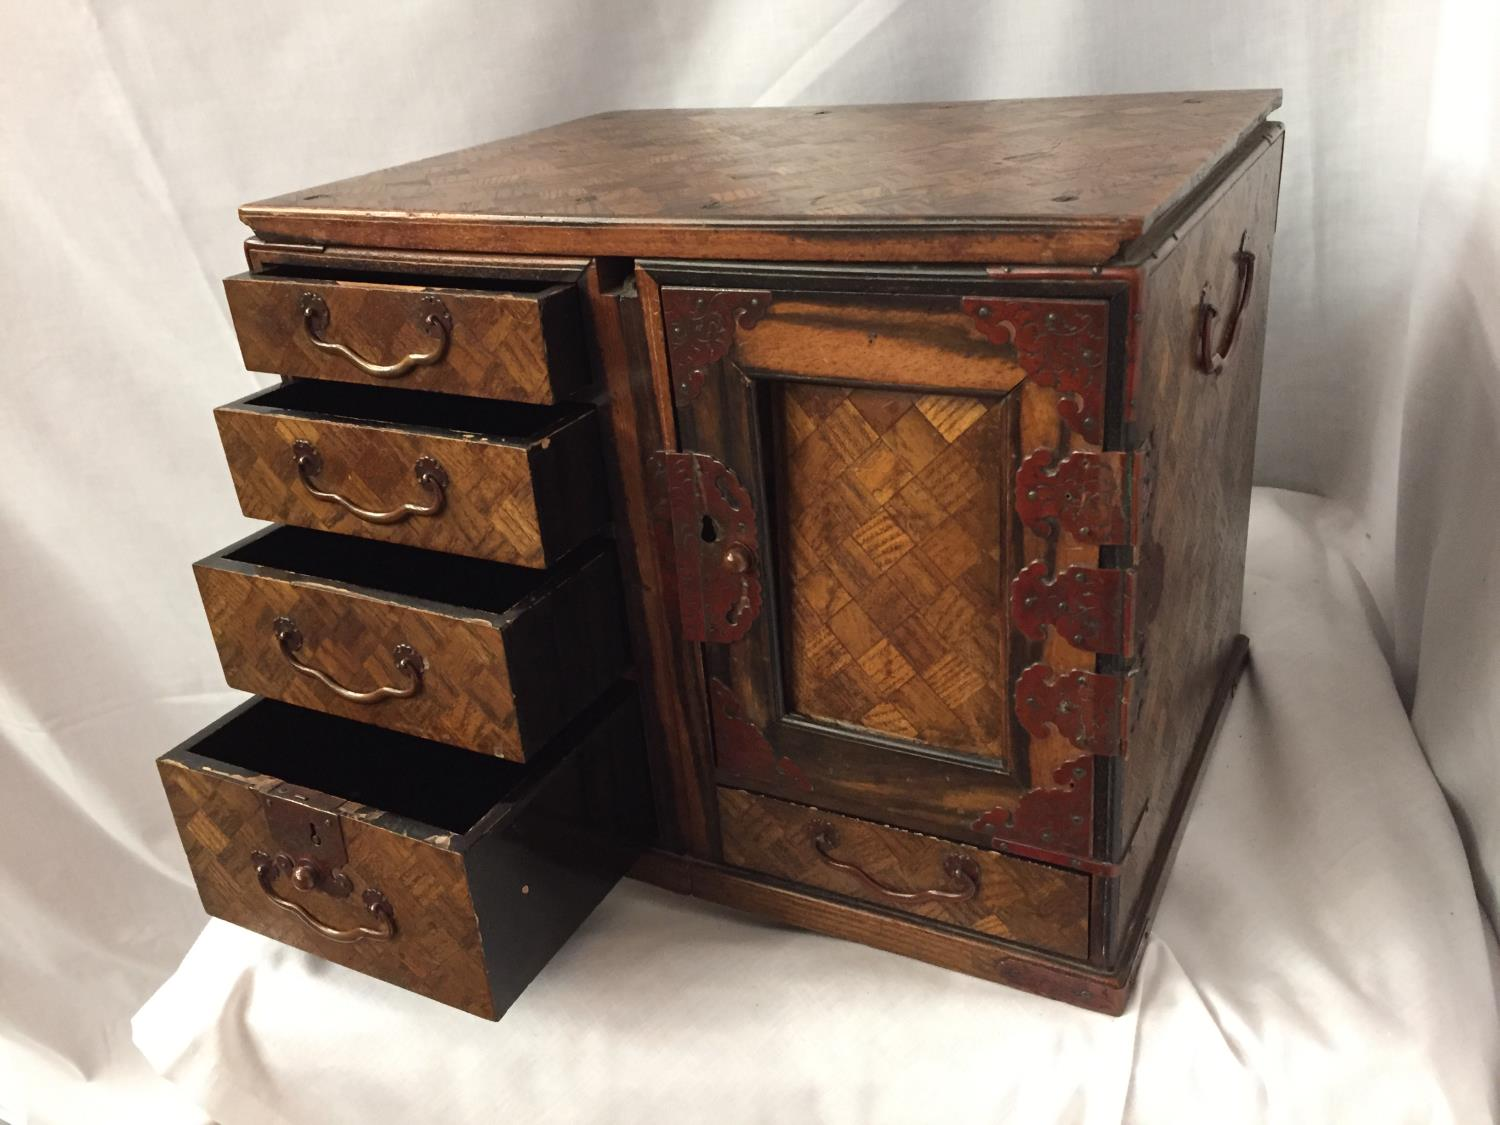 A MINATURE PARQUE WOODEN CHEST WITH DRAWERS 32CM X 26CM - Image 2 of 6